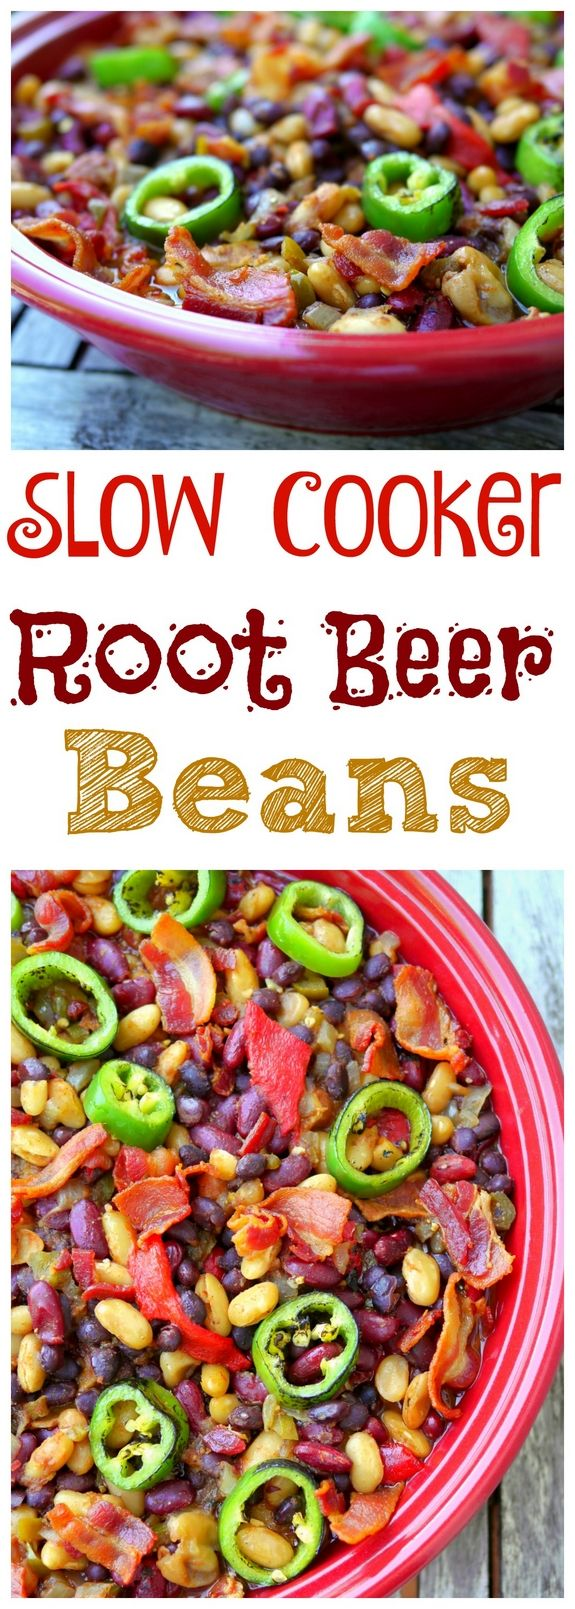 Slow Cooker Root Beer Beans are sweet, tangy and full of spice. Take this easy recipe to your next gathering from NoblePig.com.